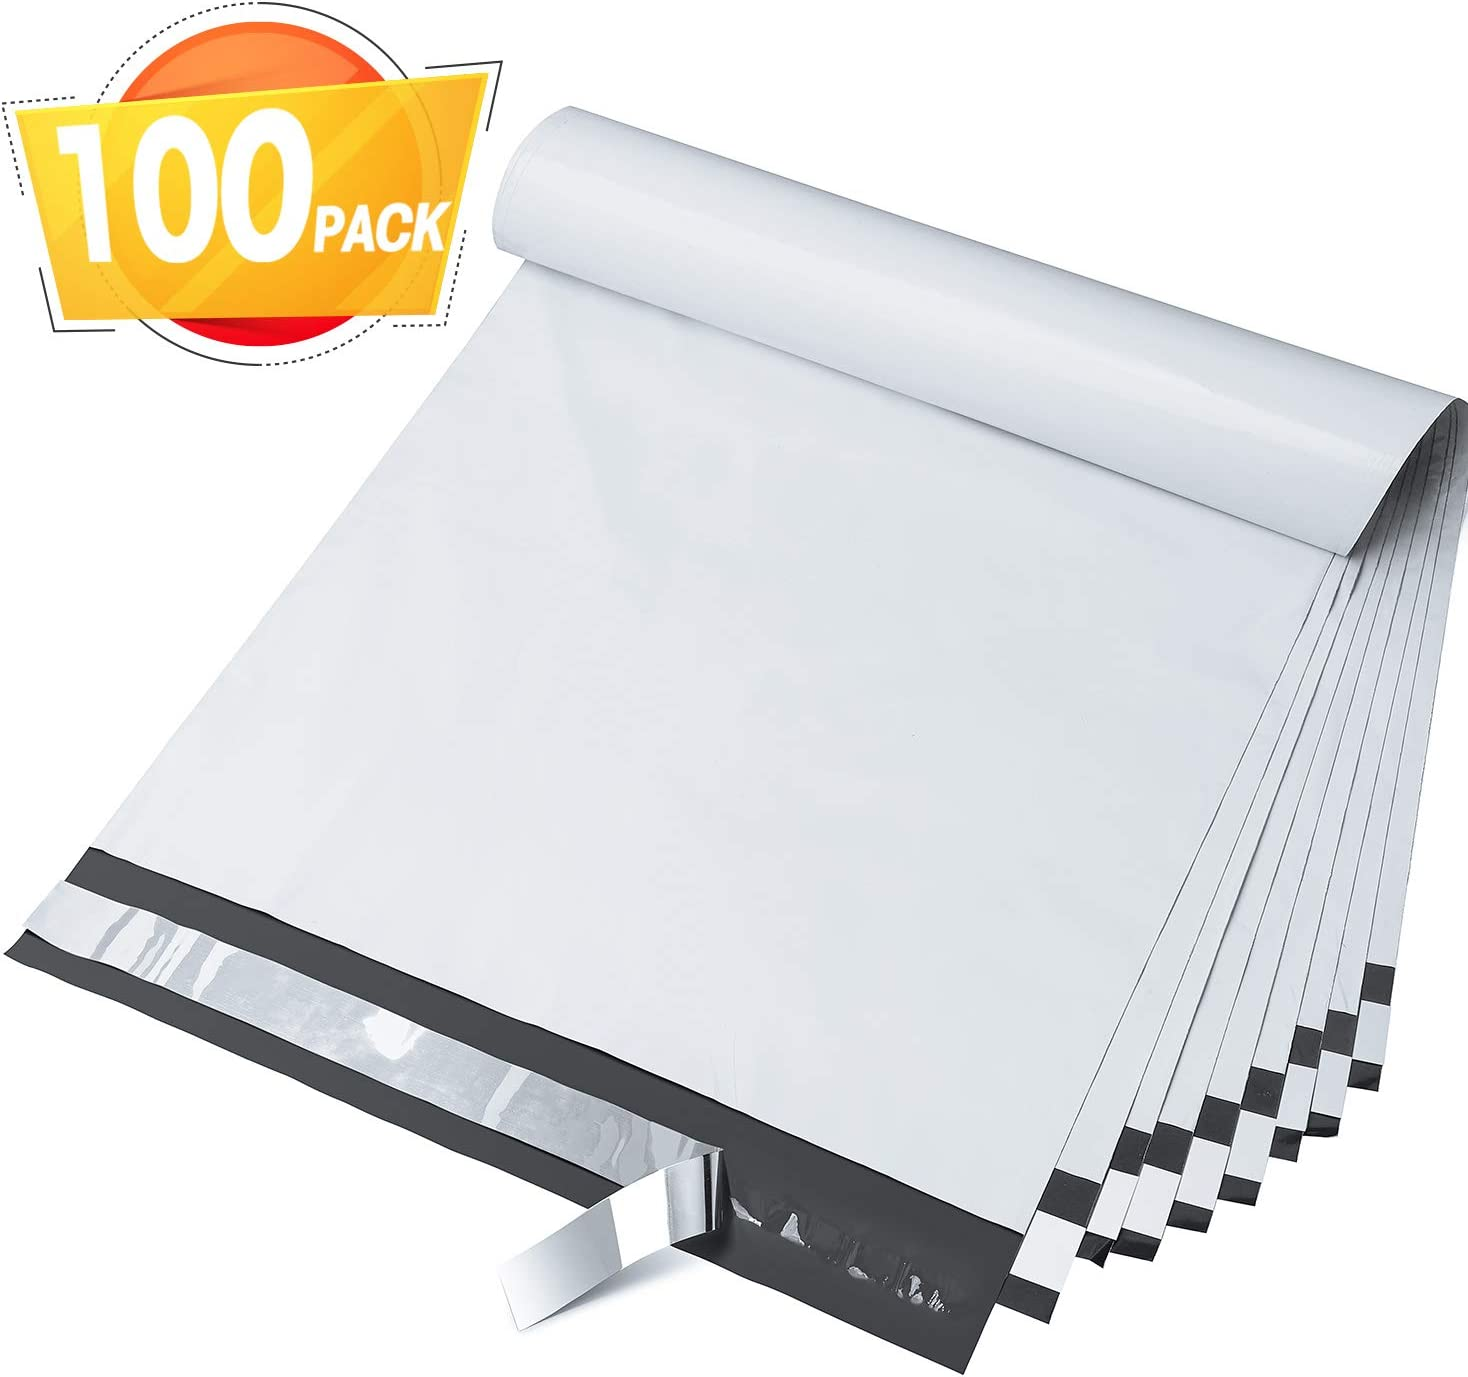 100pc White Poly Mailers Shipping Envelop